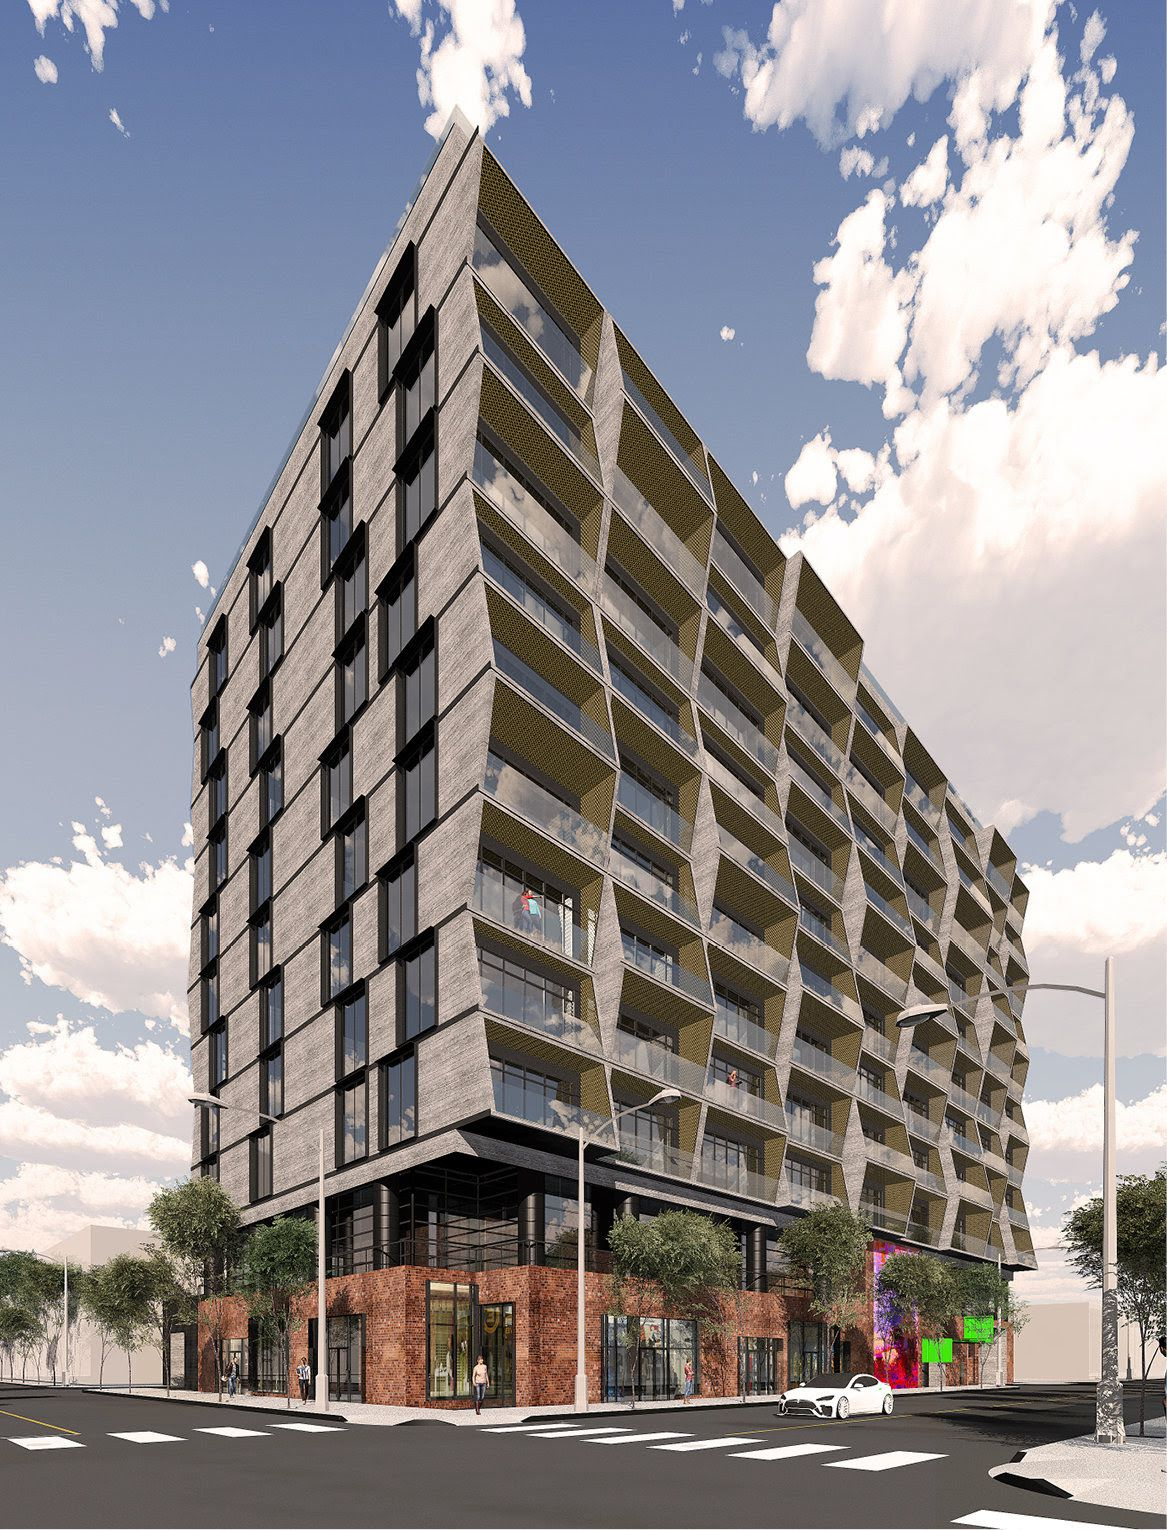 Rendering of new Arts District building